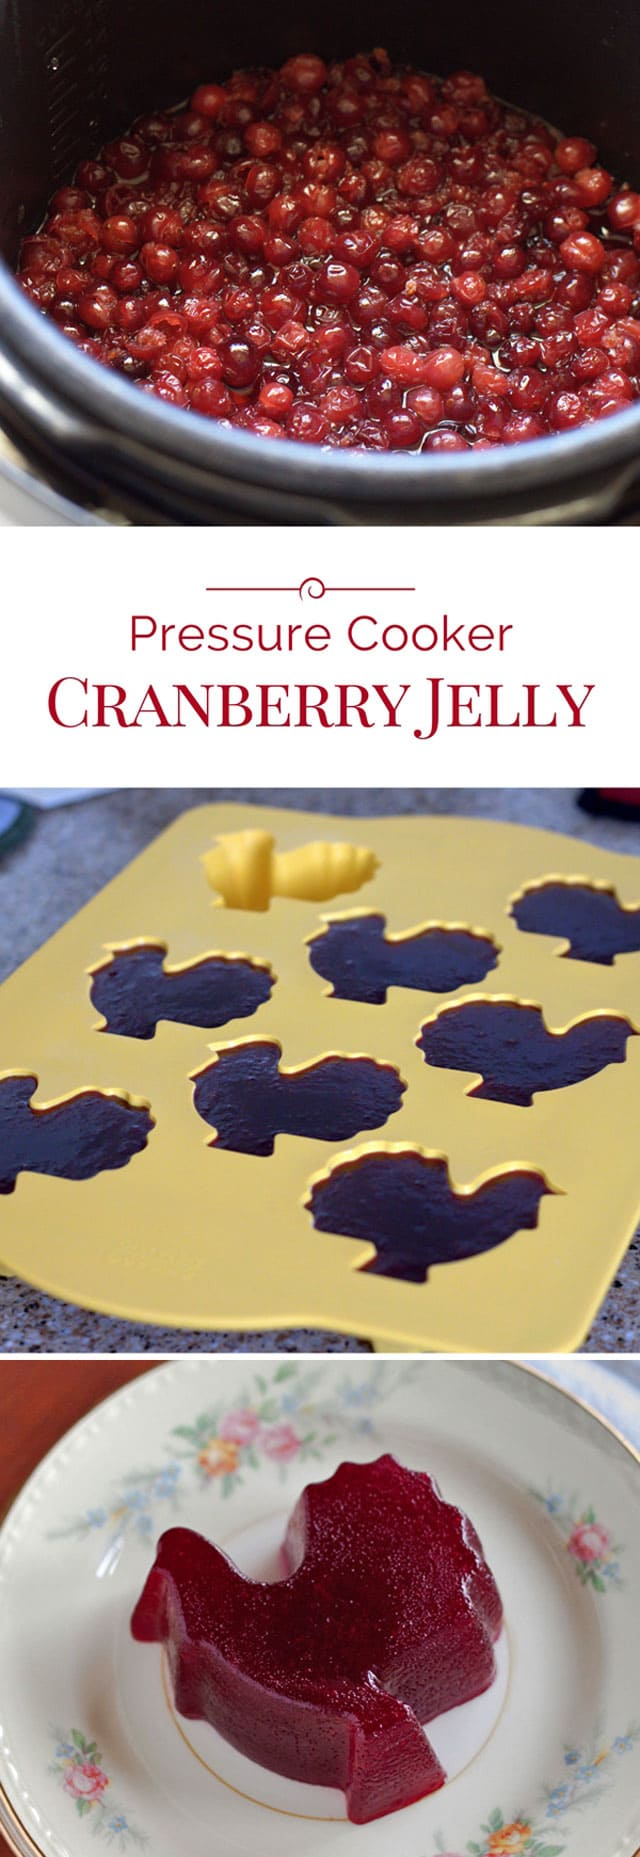 Cranberry Jelly is quick and easy to make in the pressure cooker. It's better tasting, and you can adjust the sweetness to your liking.